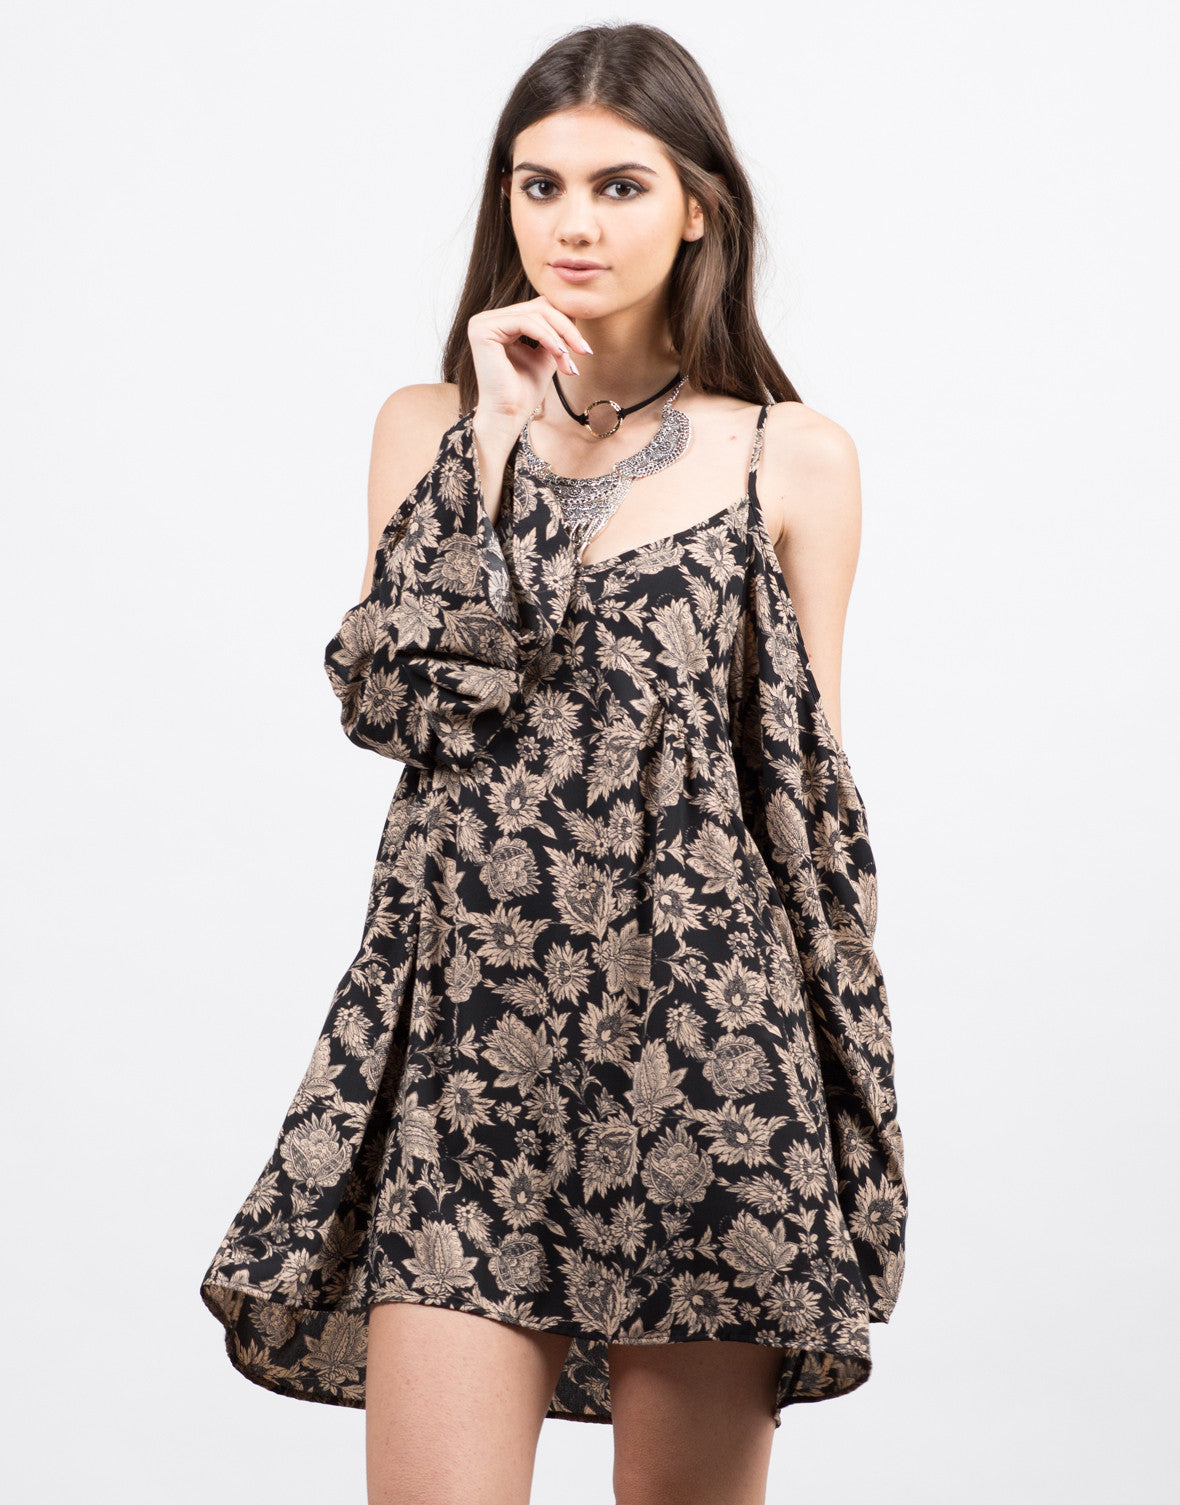 Front View of Printed Floral Dress